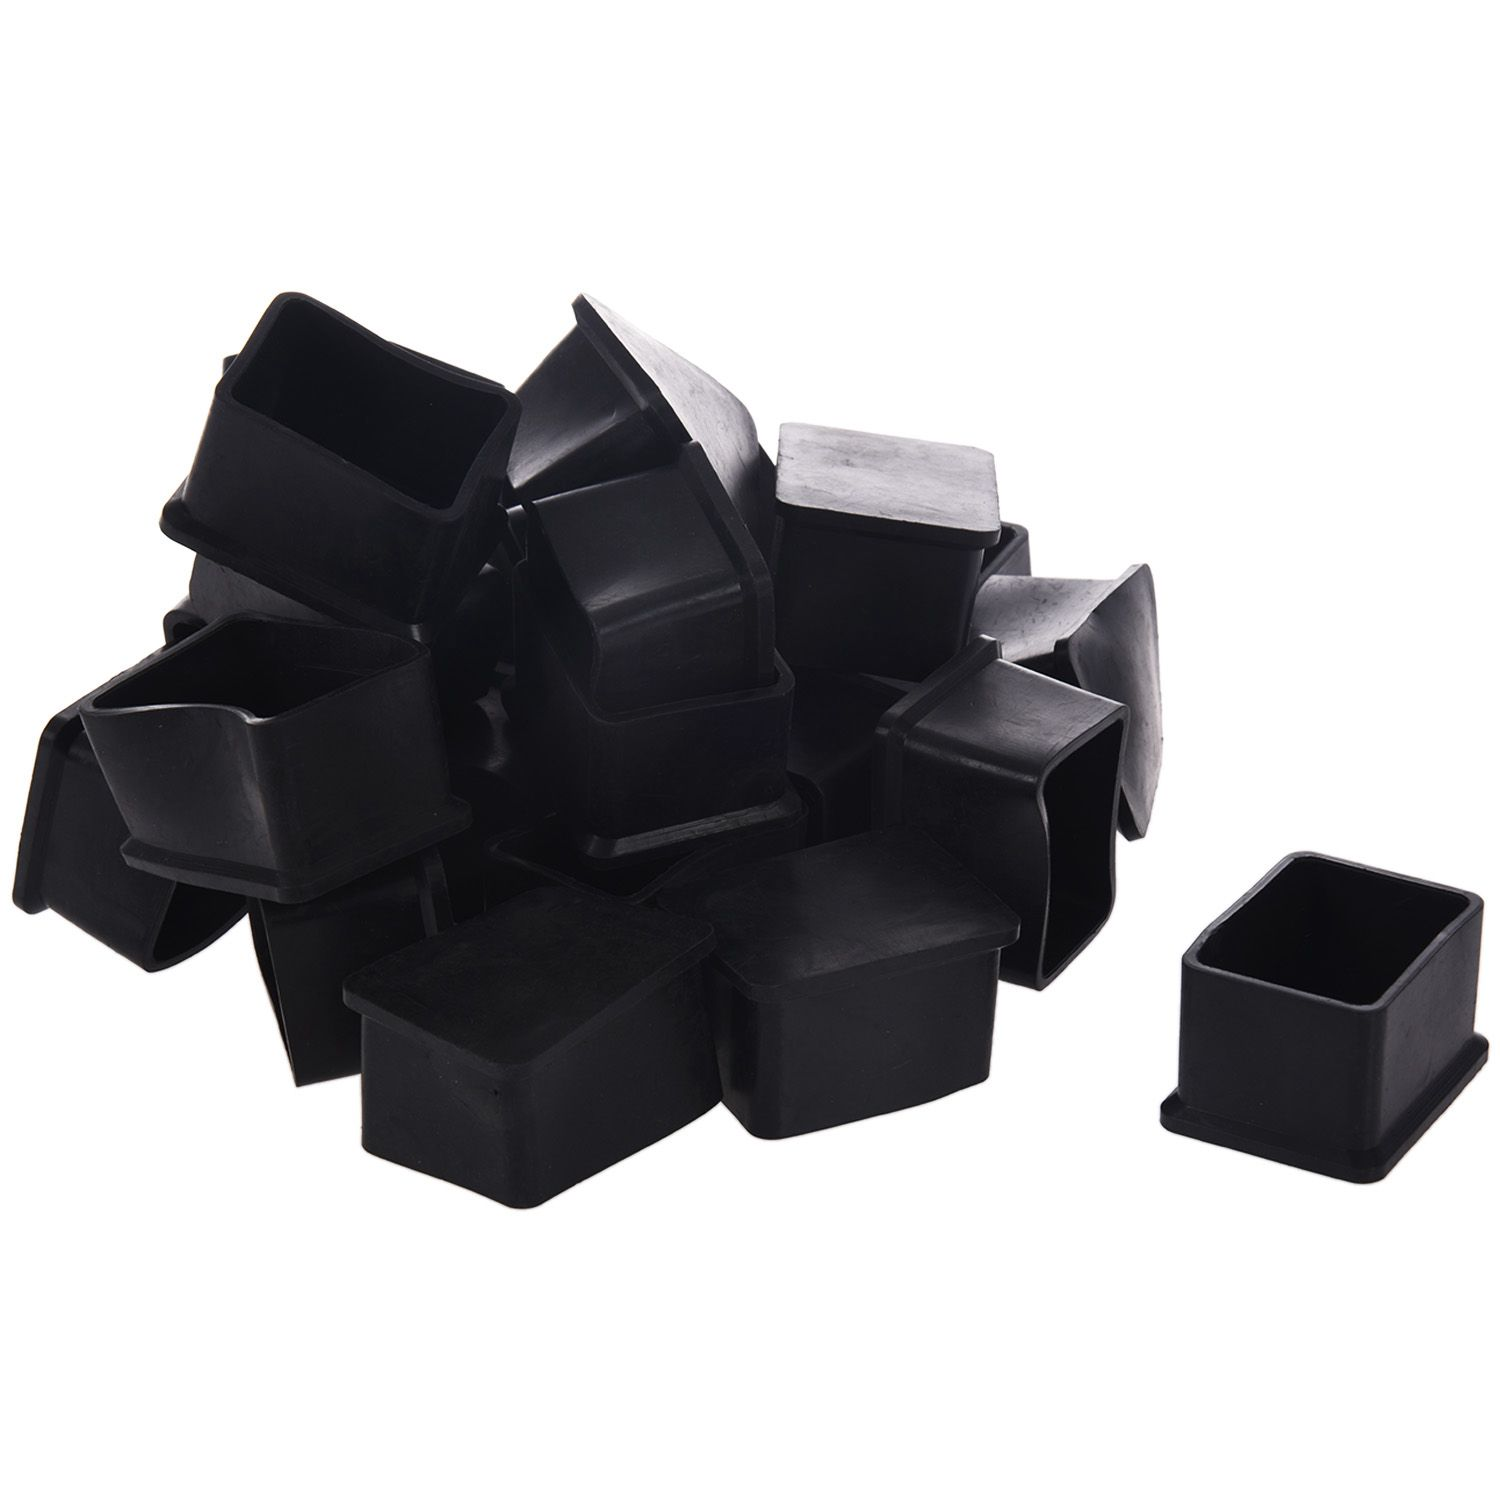 Hot Sale Rubber Rectangular Furniture Foot Cover Protector 40mm x 30mm 24 Pcs 80mm x 30mm aluminium flat rectangular bar 80 30mm width 80mm thickness 30mm 6061 t6